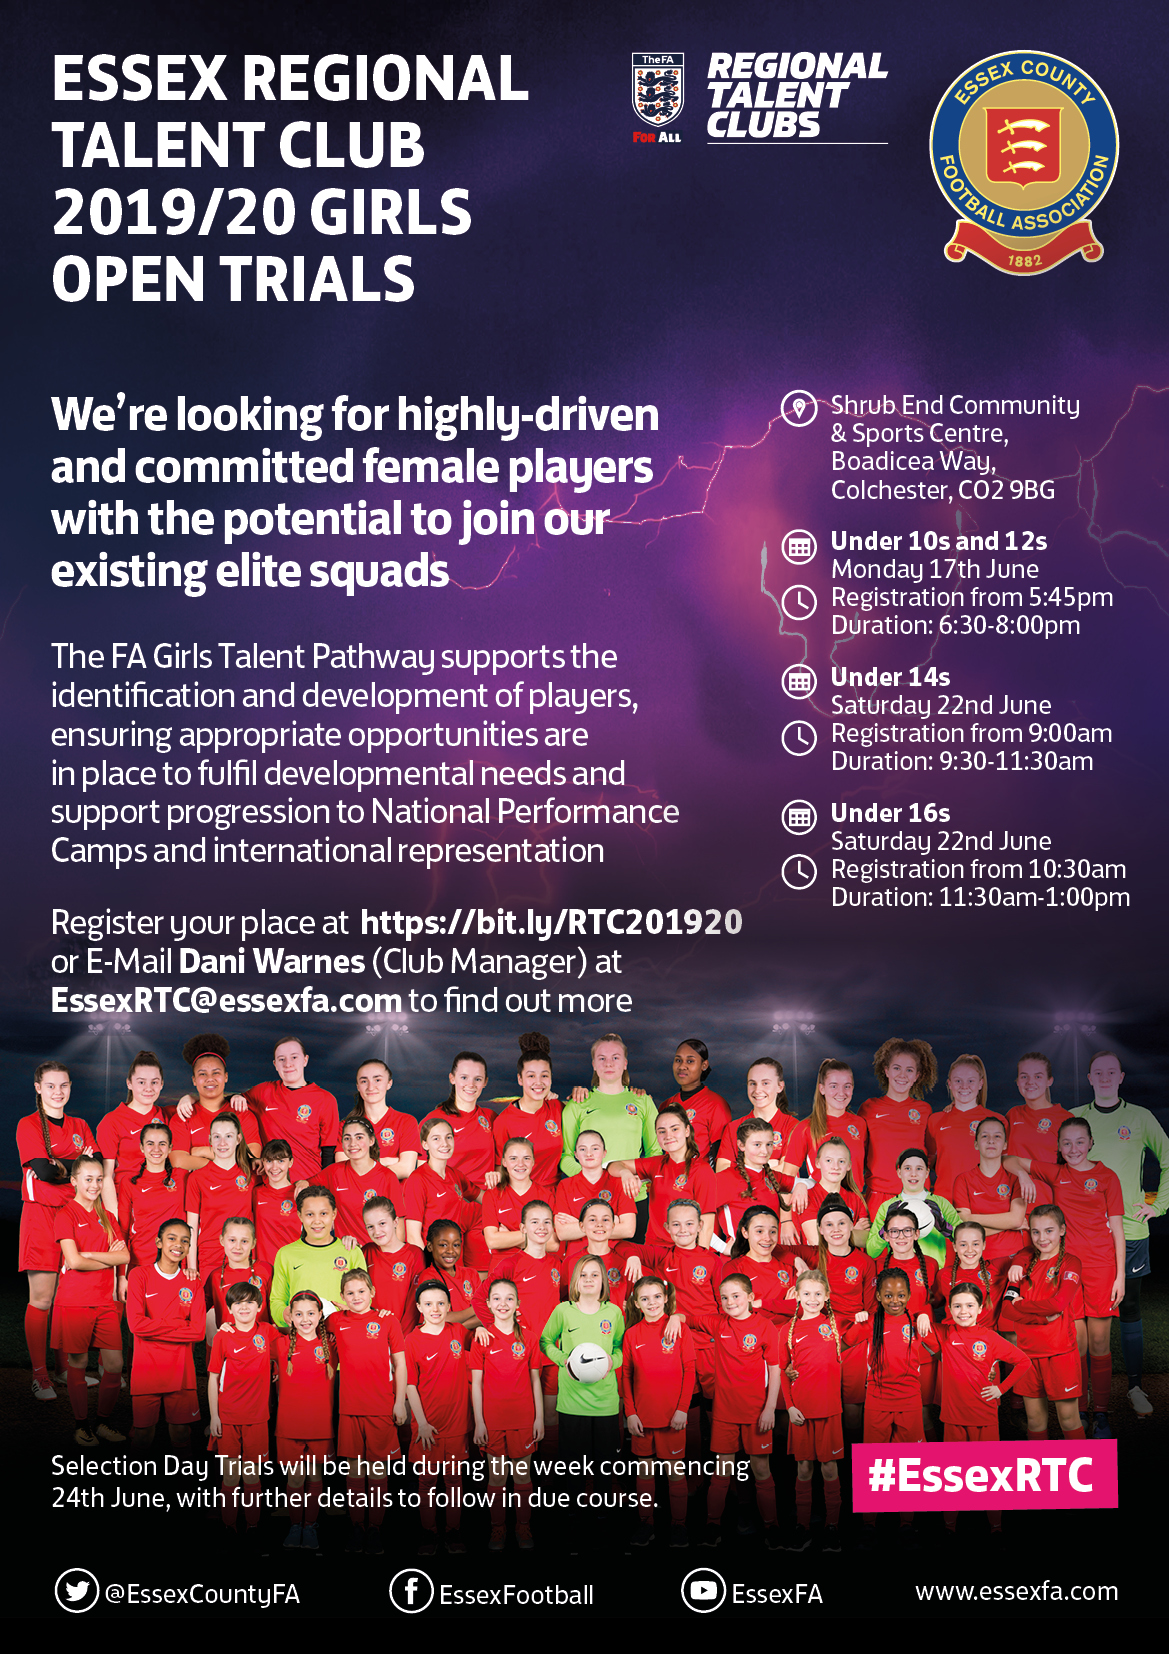 Regional Talent Club Trials